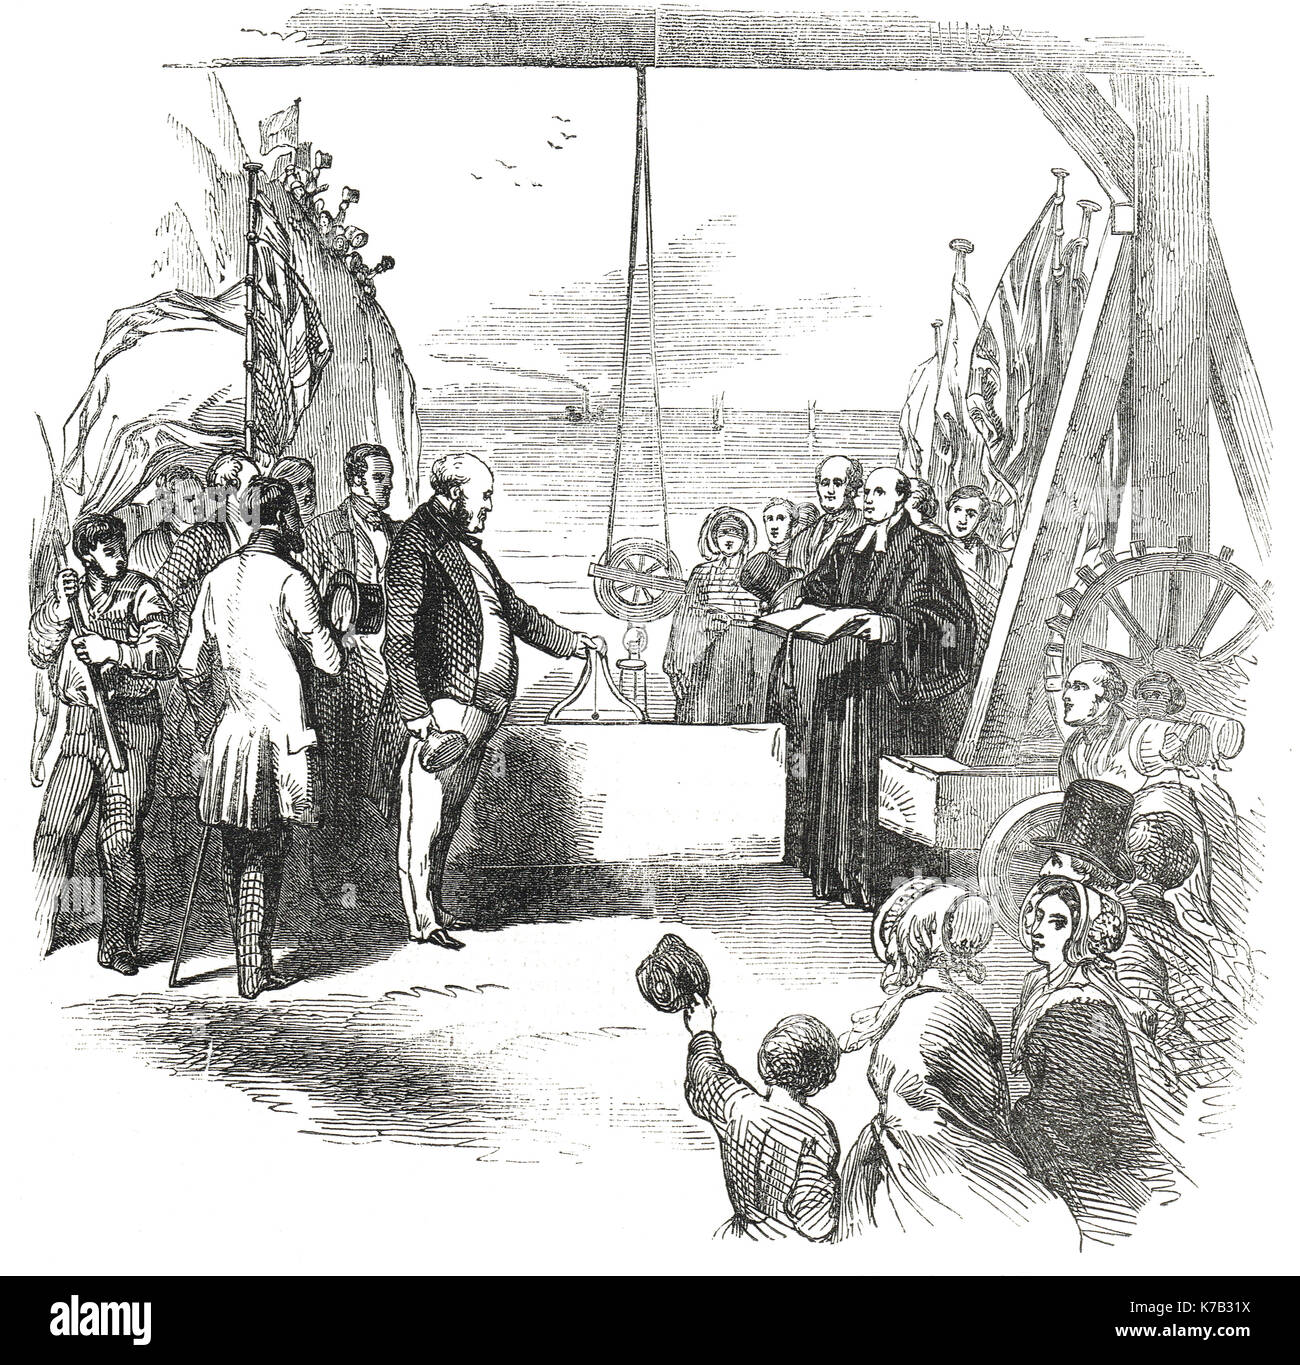 MP George Hudson laying the foundation stone at Sunderland Docks, 4 February 1848 - Stock Image